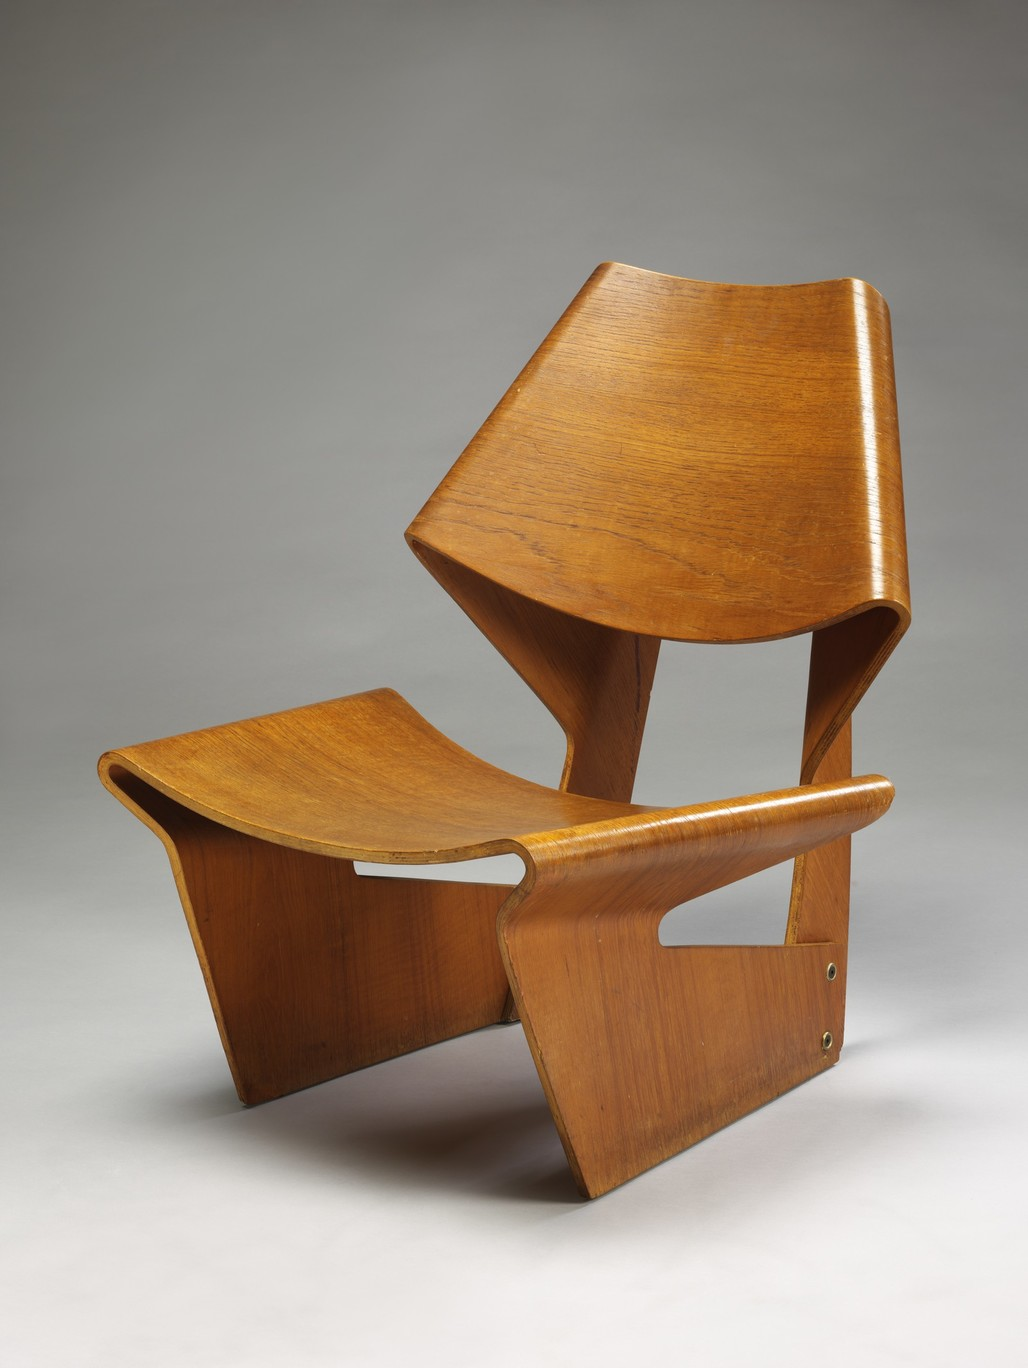 Molded plywood chair designed by Grete Jalk, 1963. Photograph © Victoria and Albert Museum, London.